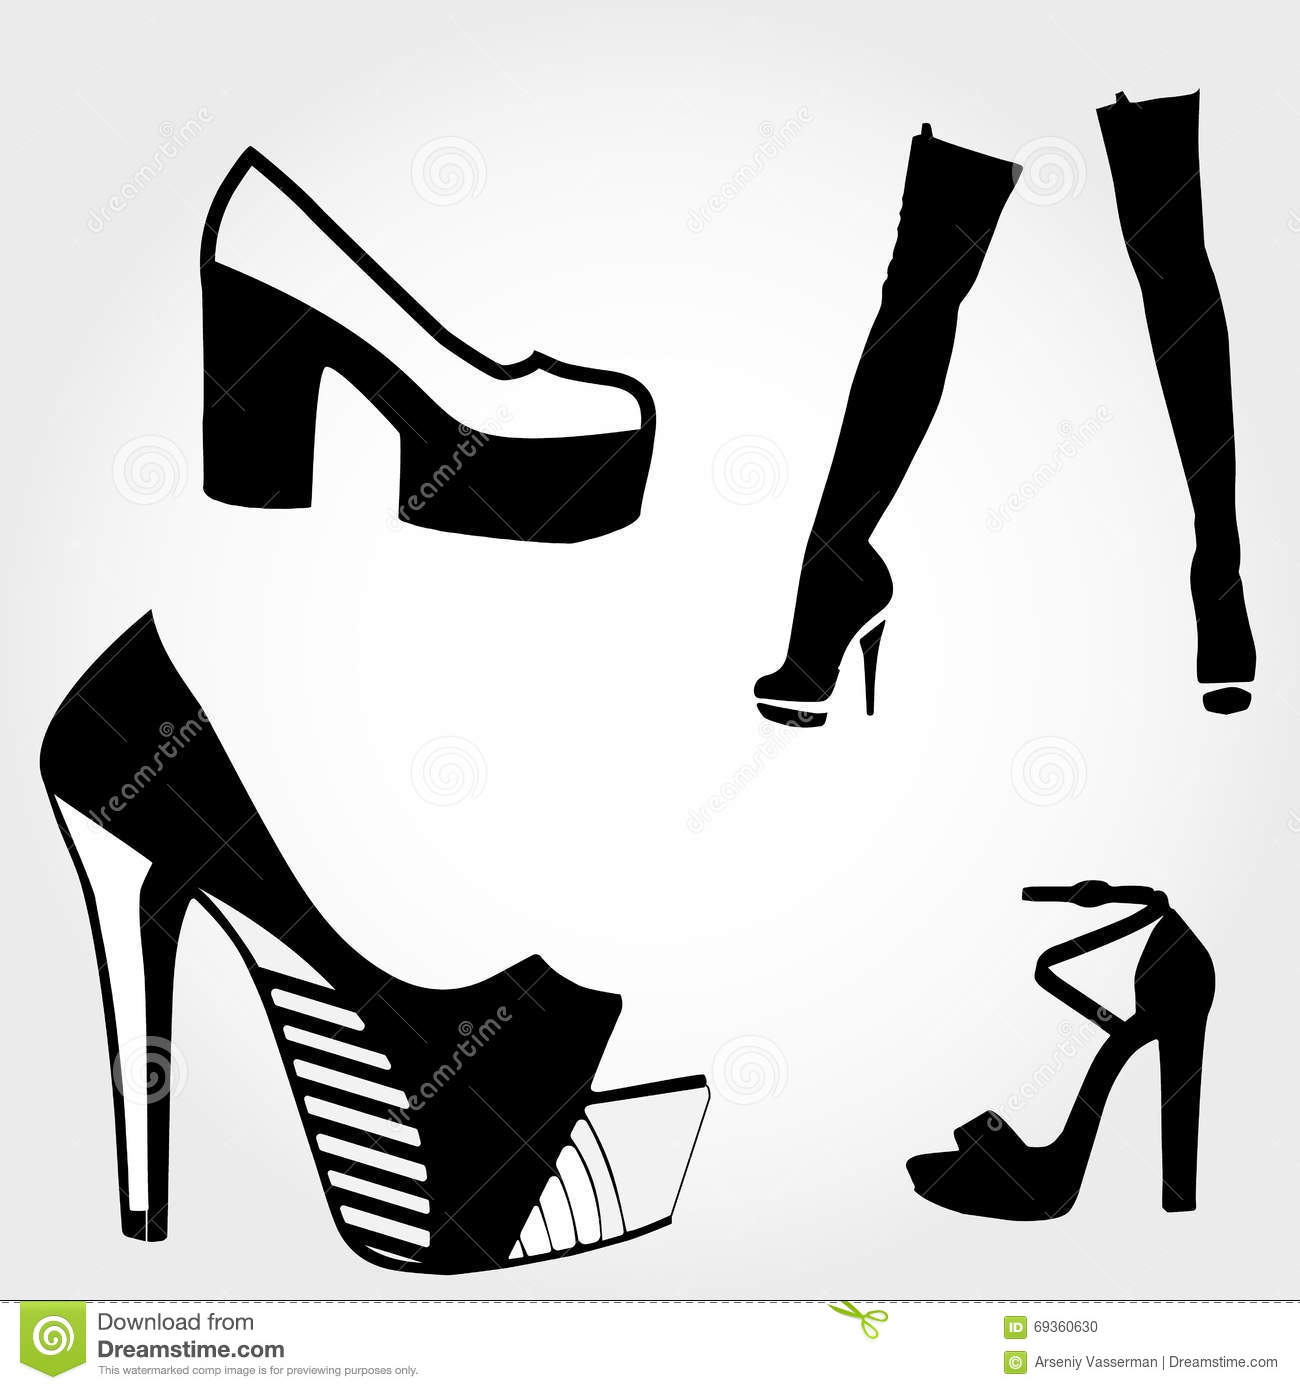 High Heels Silhouette Stock Illustration  Illustration Of Footwear